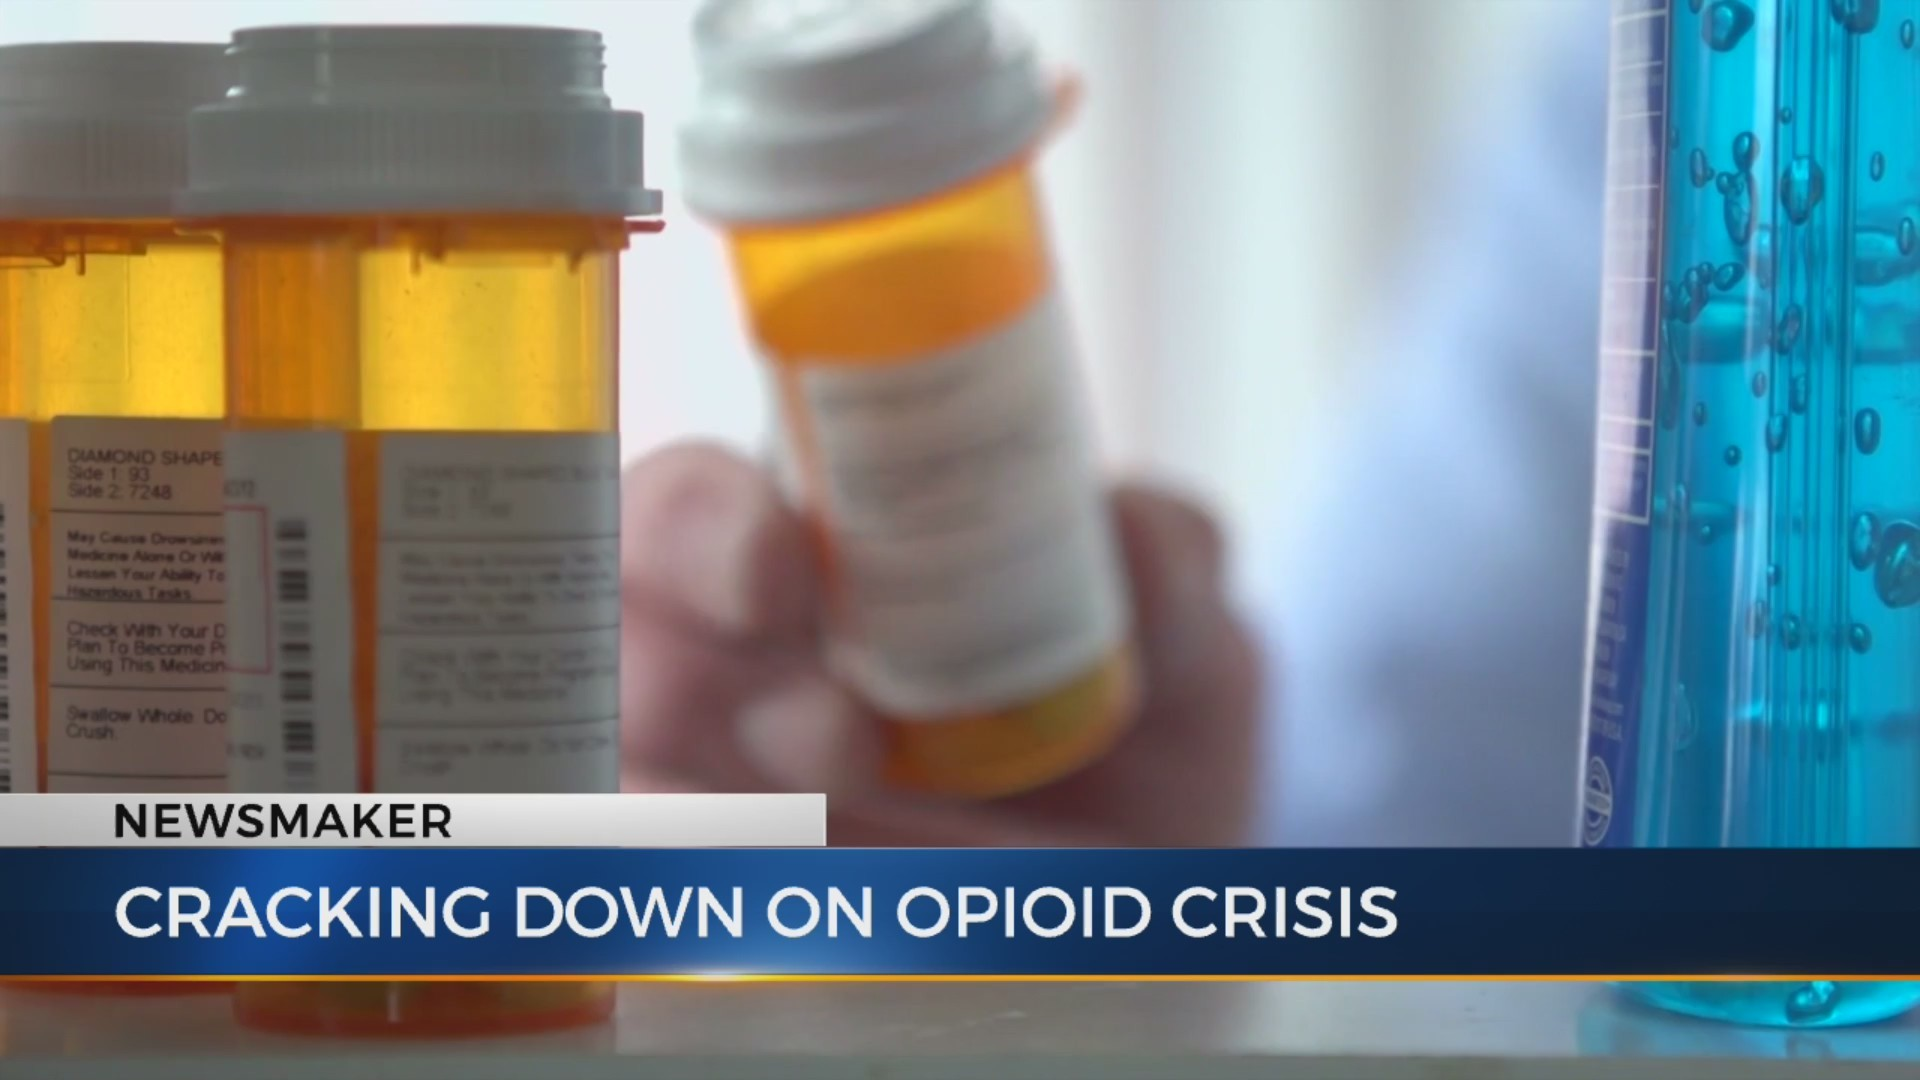 Newsmaker__Cracking_down_on_opioid_crisi_0_20181101170843